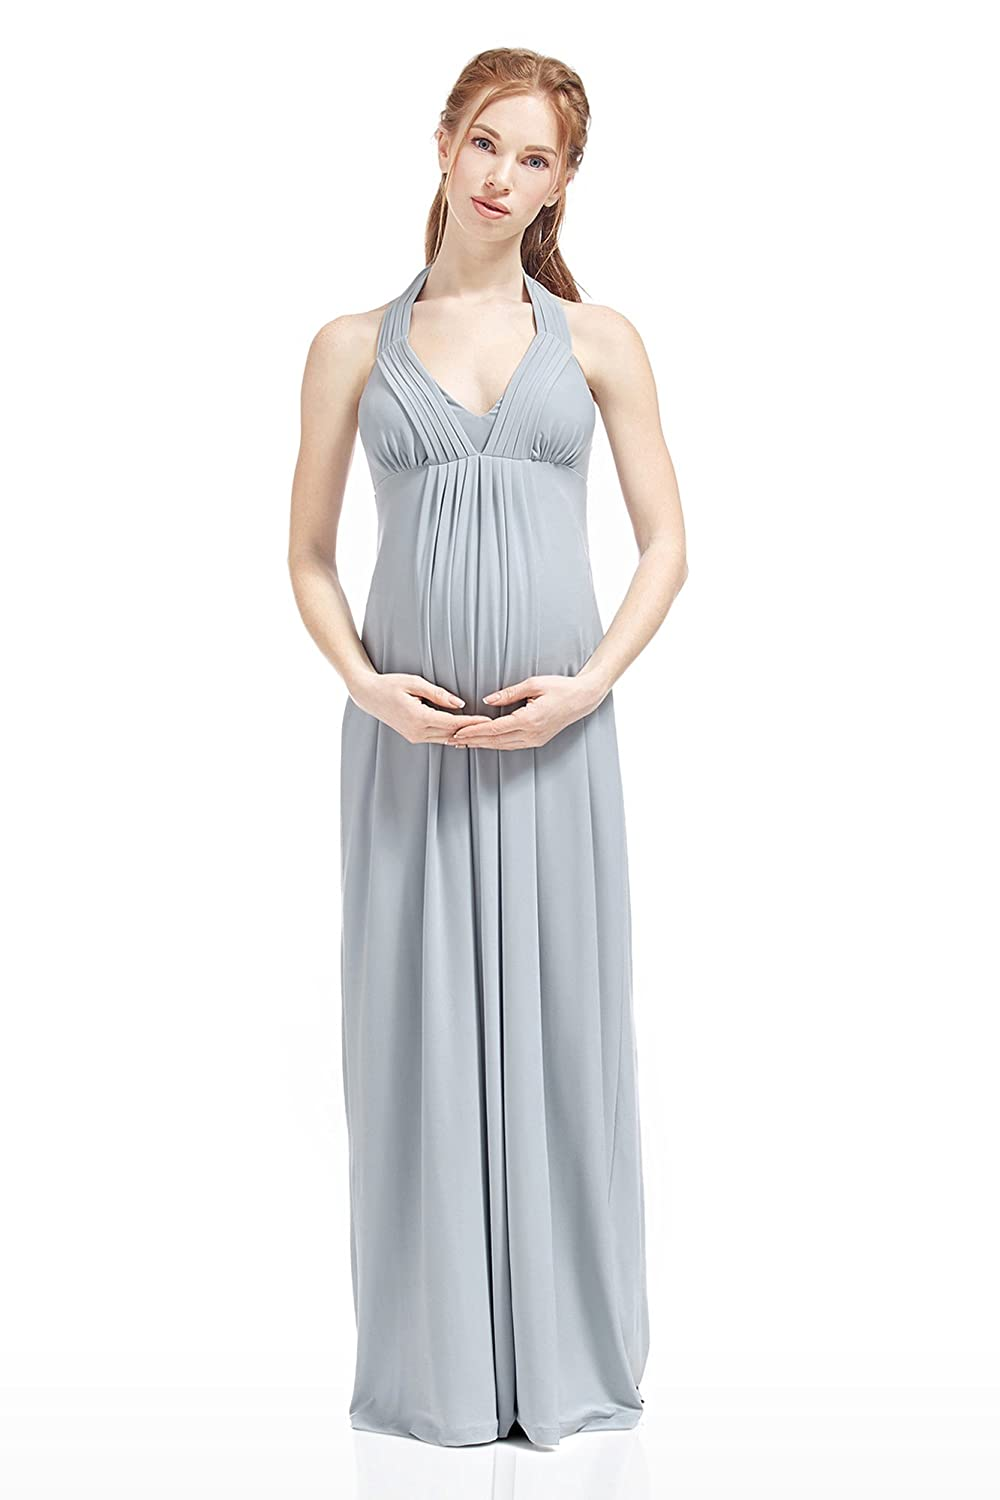 Nothing But Love Maternity And Nursing Dress Valeria Empire Waist Halter Maxi NBL